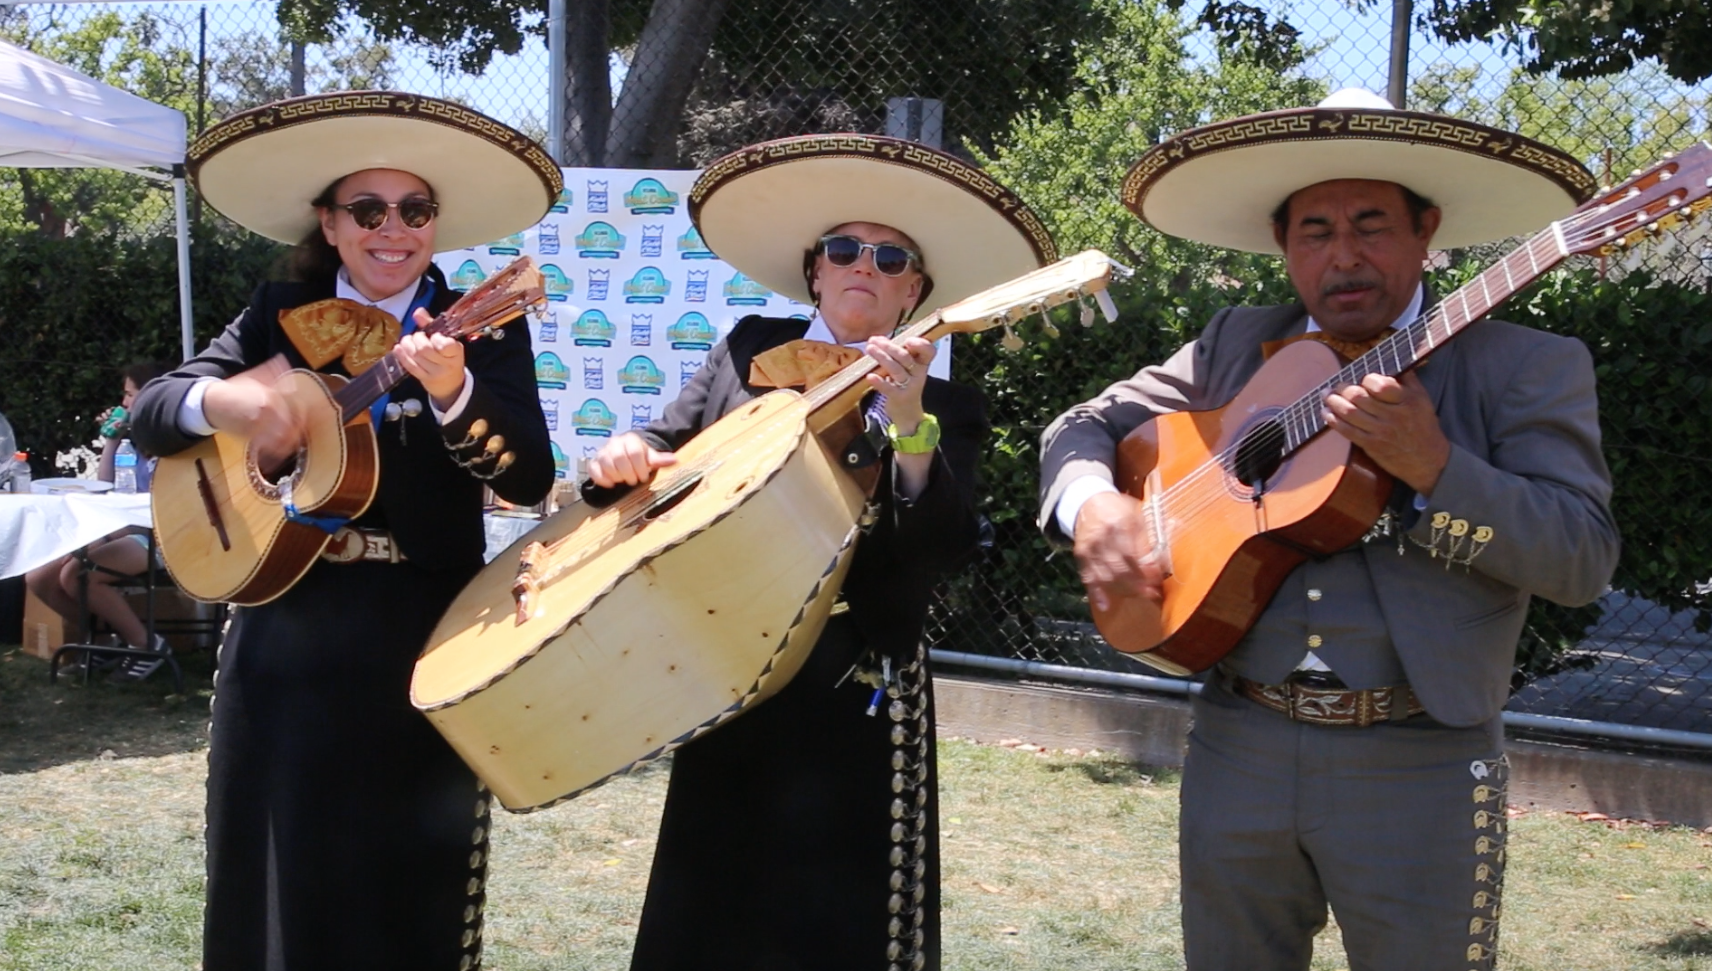 Mariachi Singers At Lunch  - During the lunch break, a taco vendor provided food. There were also mariachi singers that came and performed for the players. After lunch, the silver and gold brackets began. The top 8 teams made it into the gold bracket, meanwhile everyone else was in the silver one. In both brackets, if you lost a game, you were out. The games were long and intense, but in the end, a team from Colorado won it all. Joss Rogers made all the trophies. He made first, second, and third place award for both brackets. He also helped with the participation awards, which were little kubb pieces.  The tournament was a huge success. I played on a team and it was really fun. Kubb is a strategic game that more people should play!